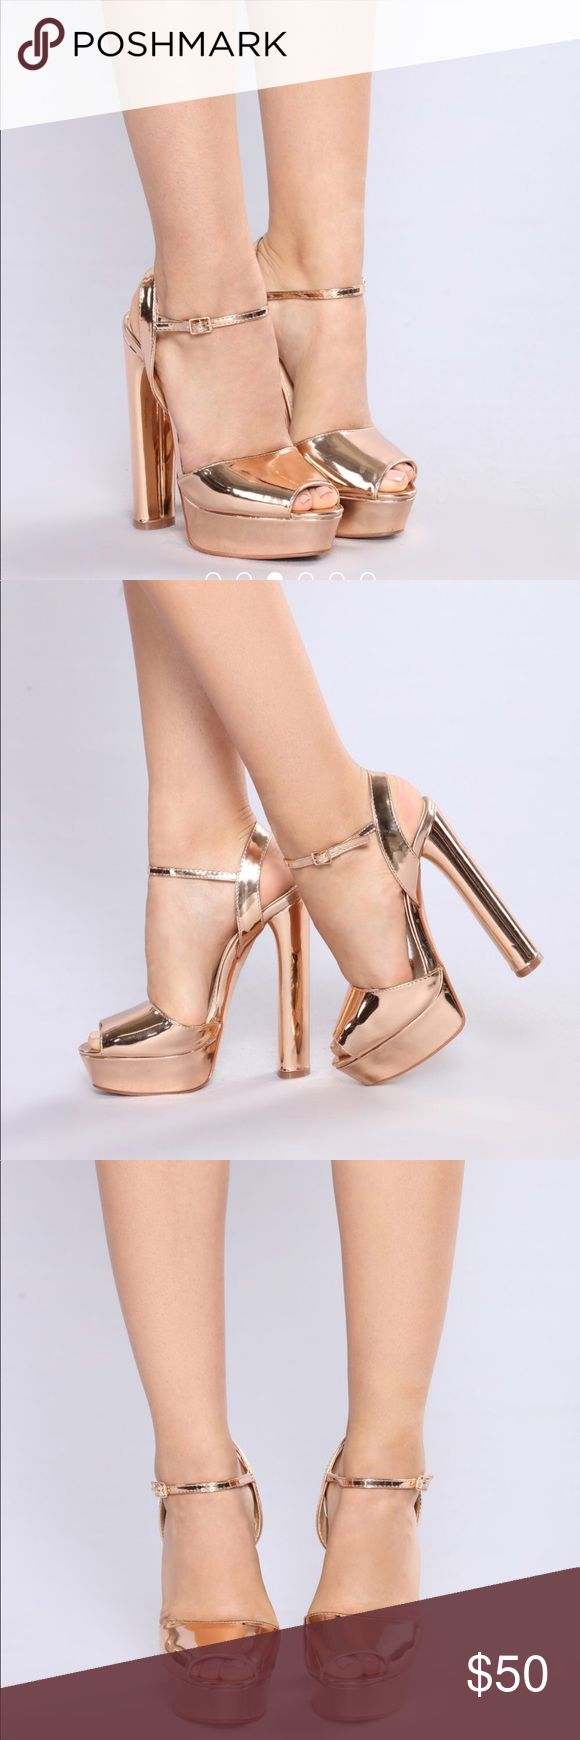 New rose gold platform heels size 7 Brand new! Never worn. Gorgeous and comfortable height booster platform heels in Rose Gold metallic mirror shine color. 6inch cylinder heels. Comfortable and makes you super tall! Adjustable Ankle strap. True to Size women's 7 Shoes Heels